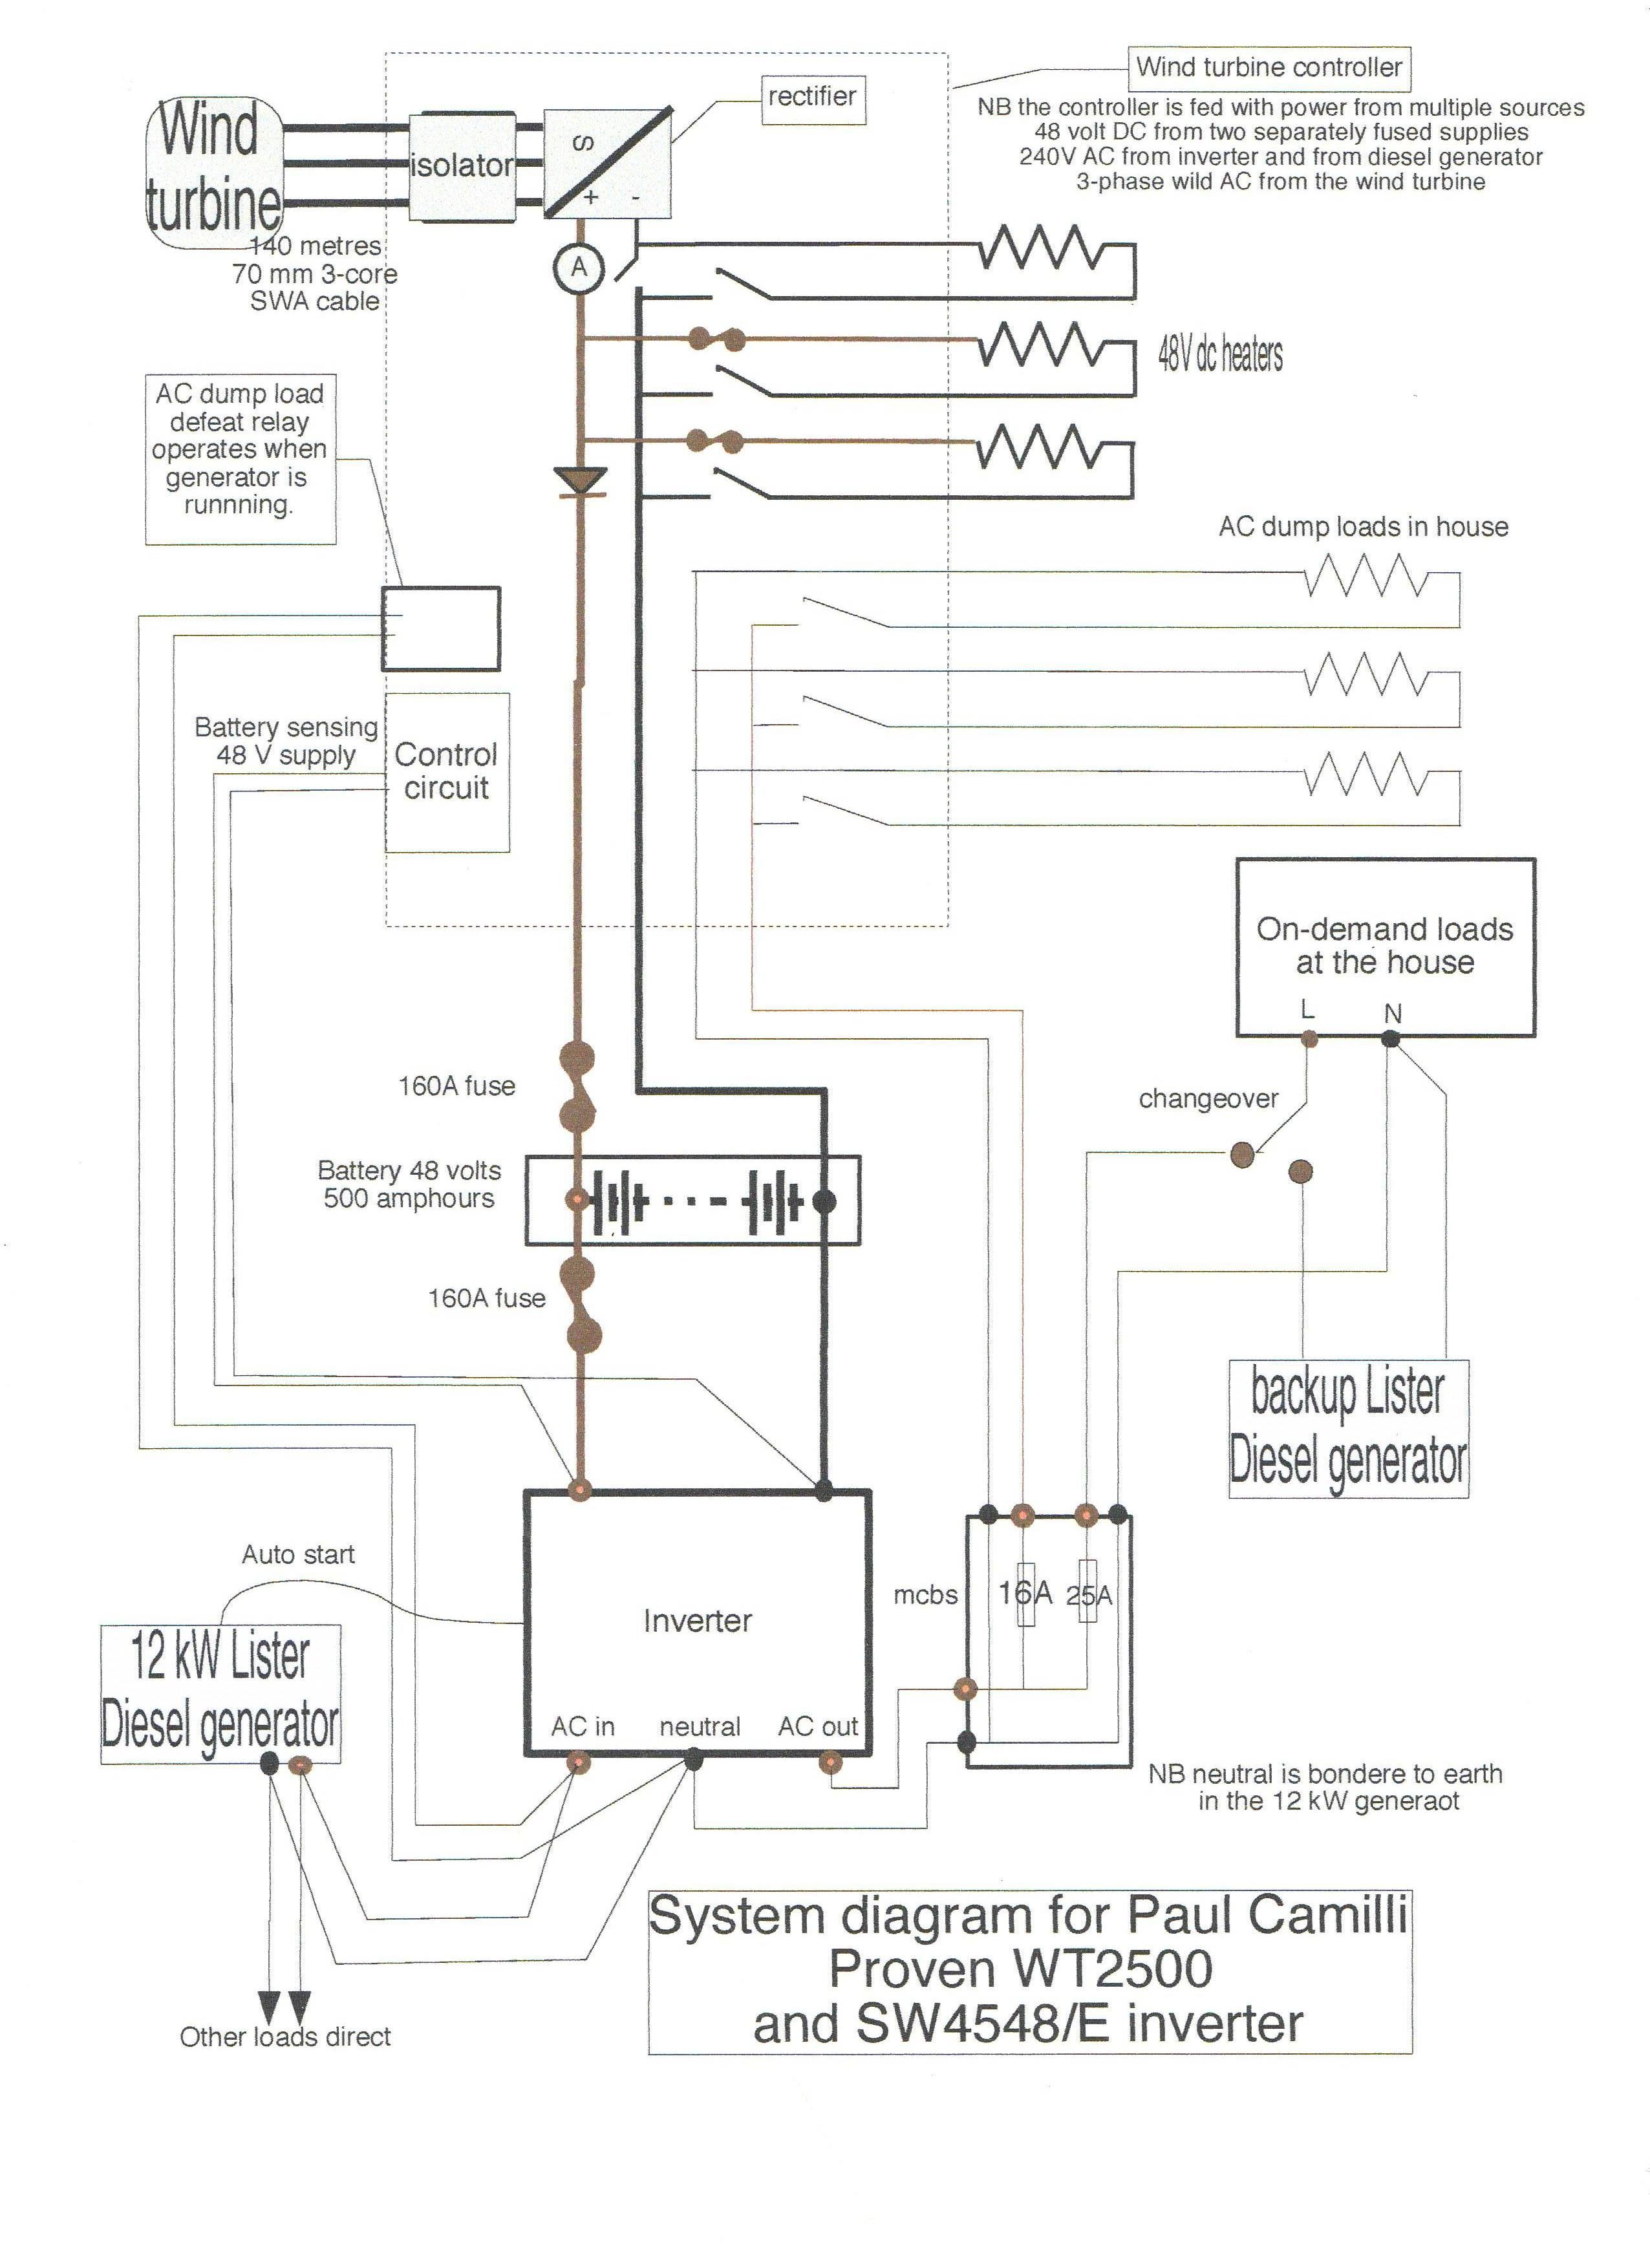 medium resolution of wind turbine wiring diagram homesteading pinterest wind rh pinterest com wind turbine blades wind turbine diagram